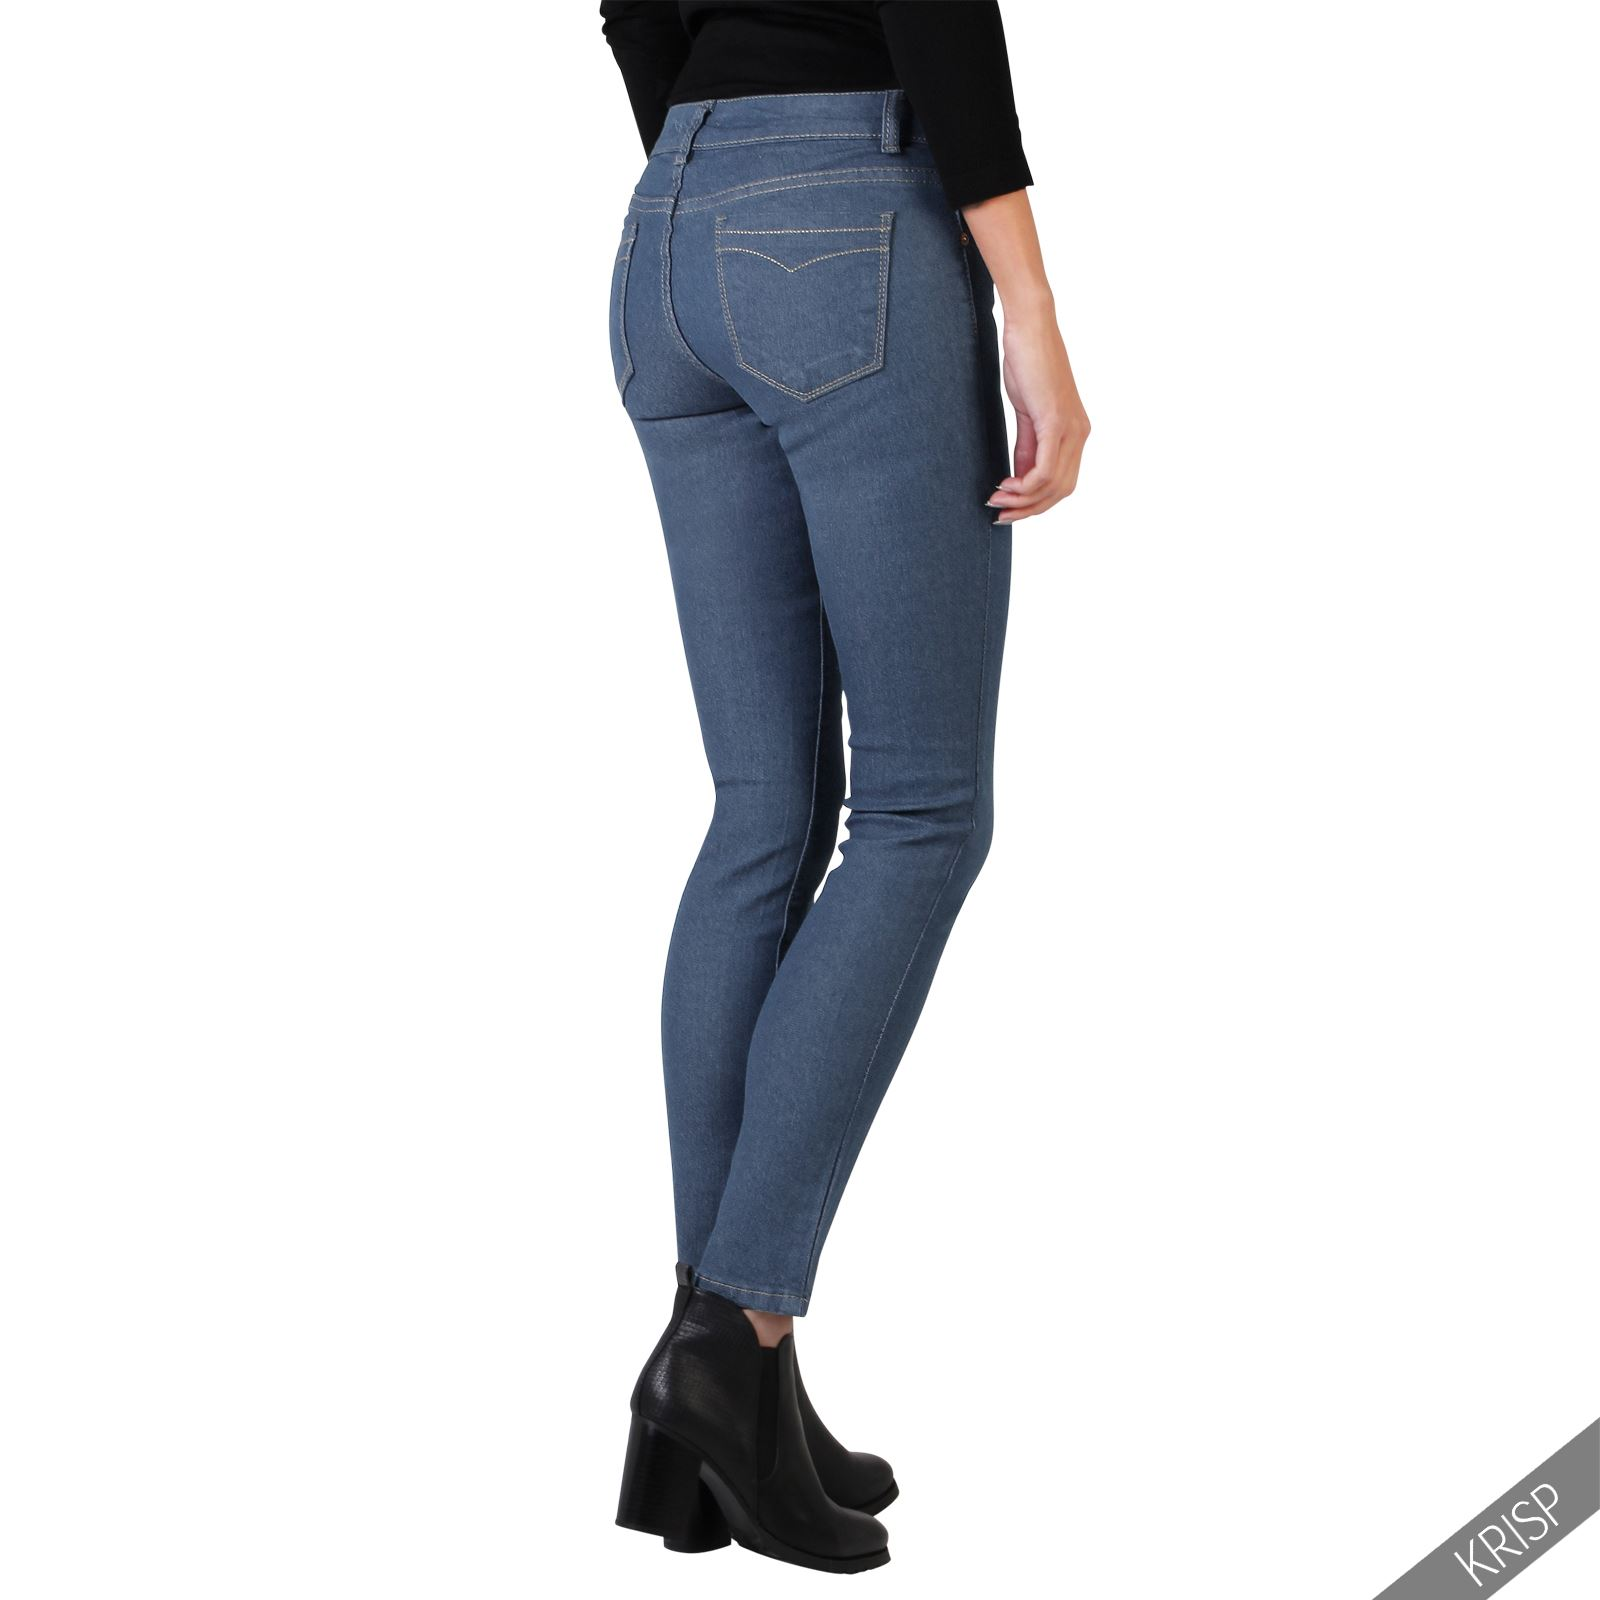 Buy from our women slim fit trousers range at Tu Clothing. Sainsbury's Tu clothing can be found in selected Sainsbury's stores across the UK.